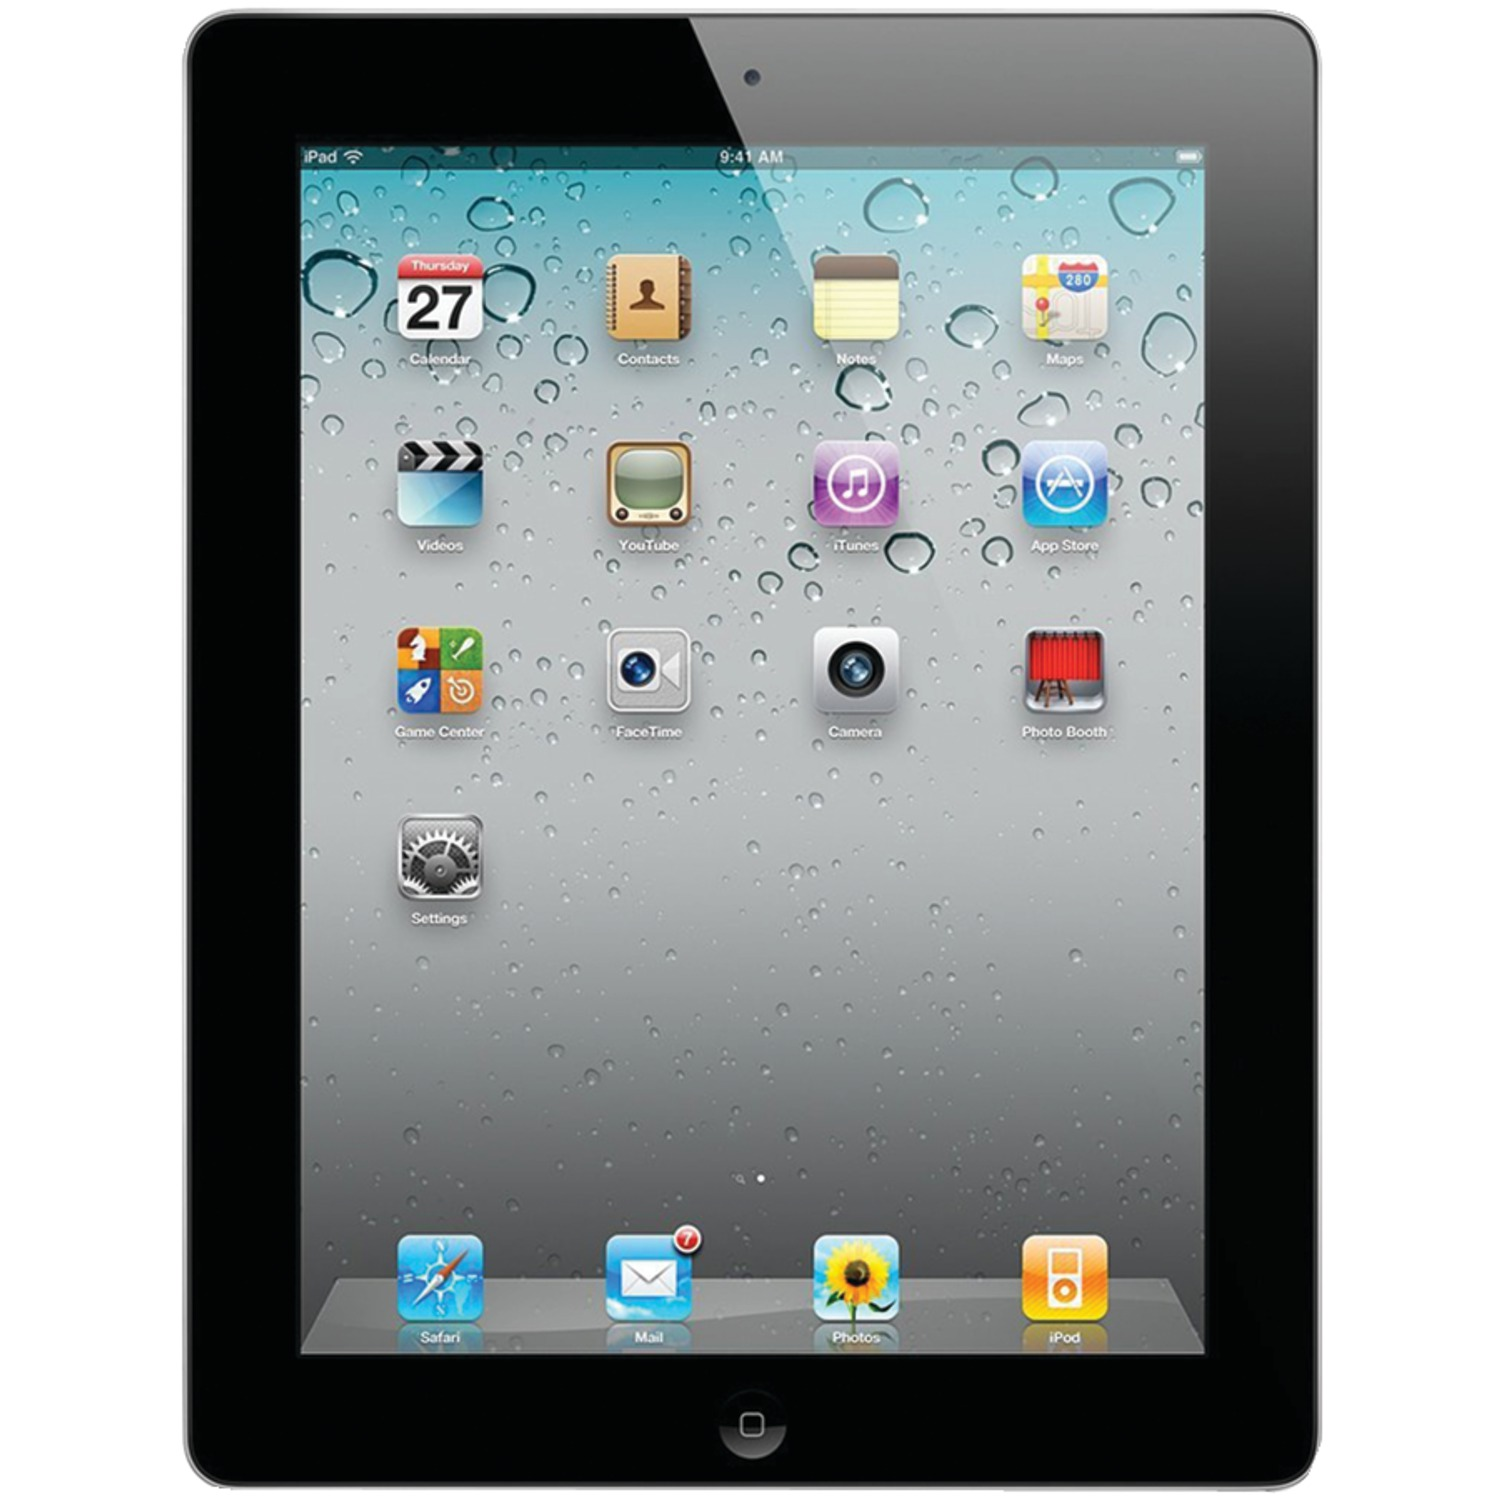 Apple MC769LL/A-ER Refurbished 16GB iPad 2 With Wi-Fi (Black)